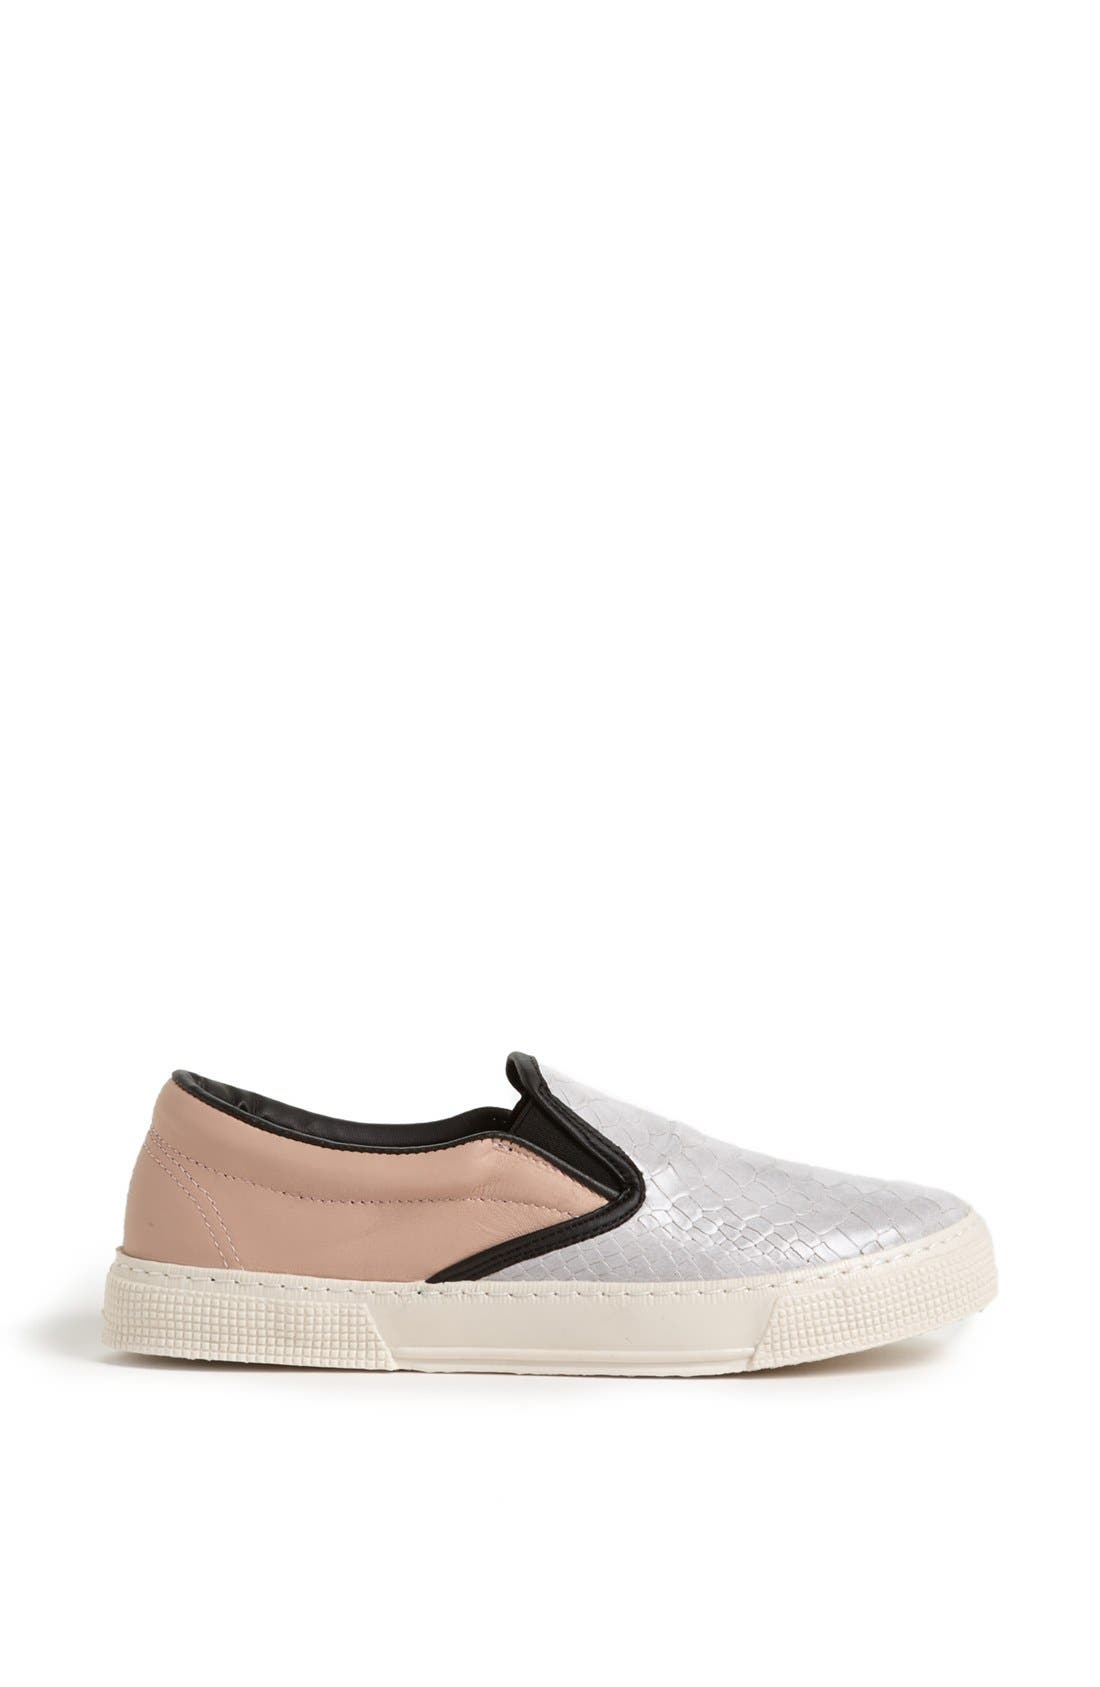 Slip-On Sneaker,                             Alternate thumbnail 6, color,                             050